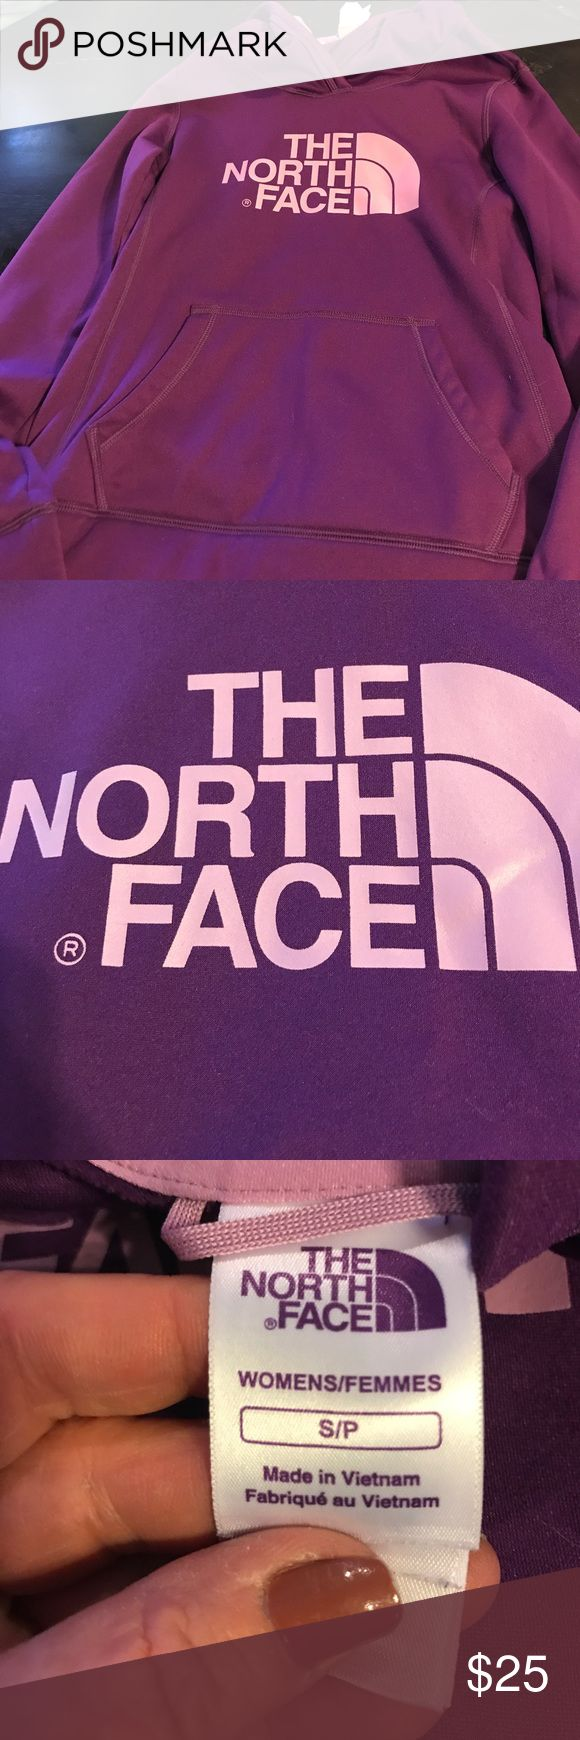 Women's North Face Purple Small Hoodie It's getting cold out ... Purple with pink lettering hoodie in small . Great Condition !!!! Notth Face Tops Sweatshirts & Hoodies